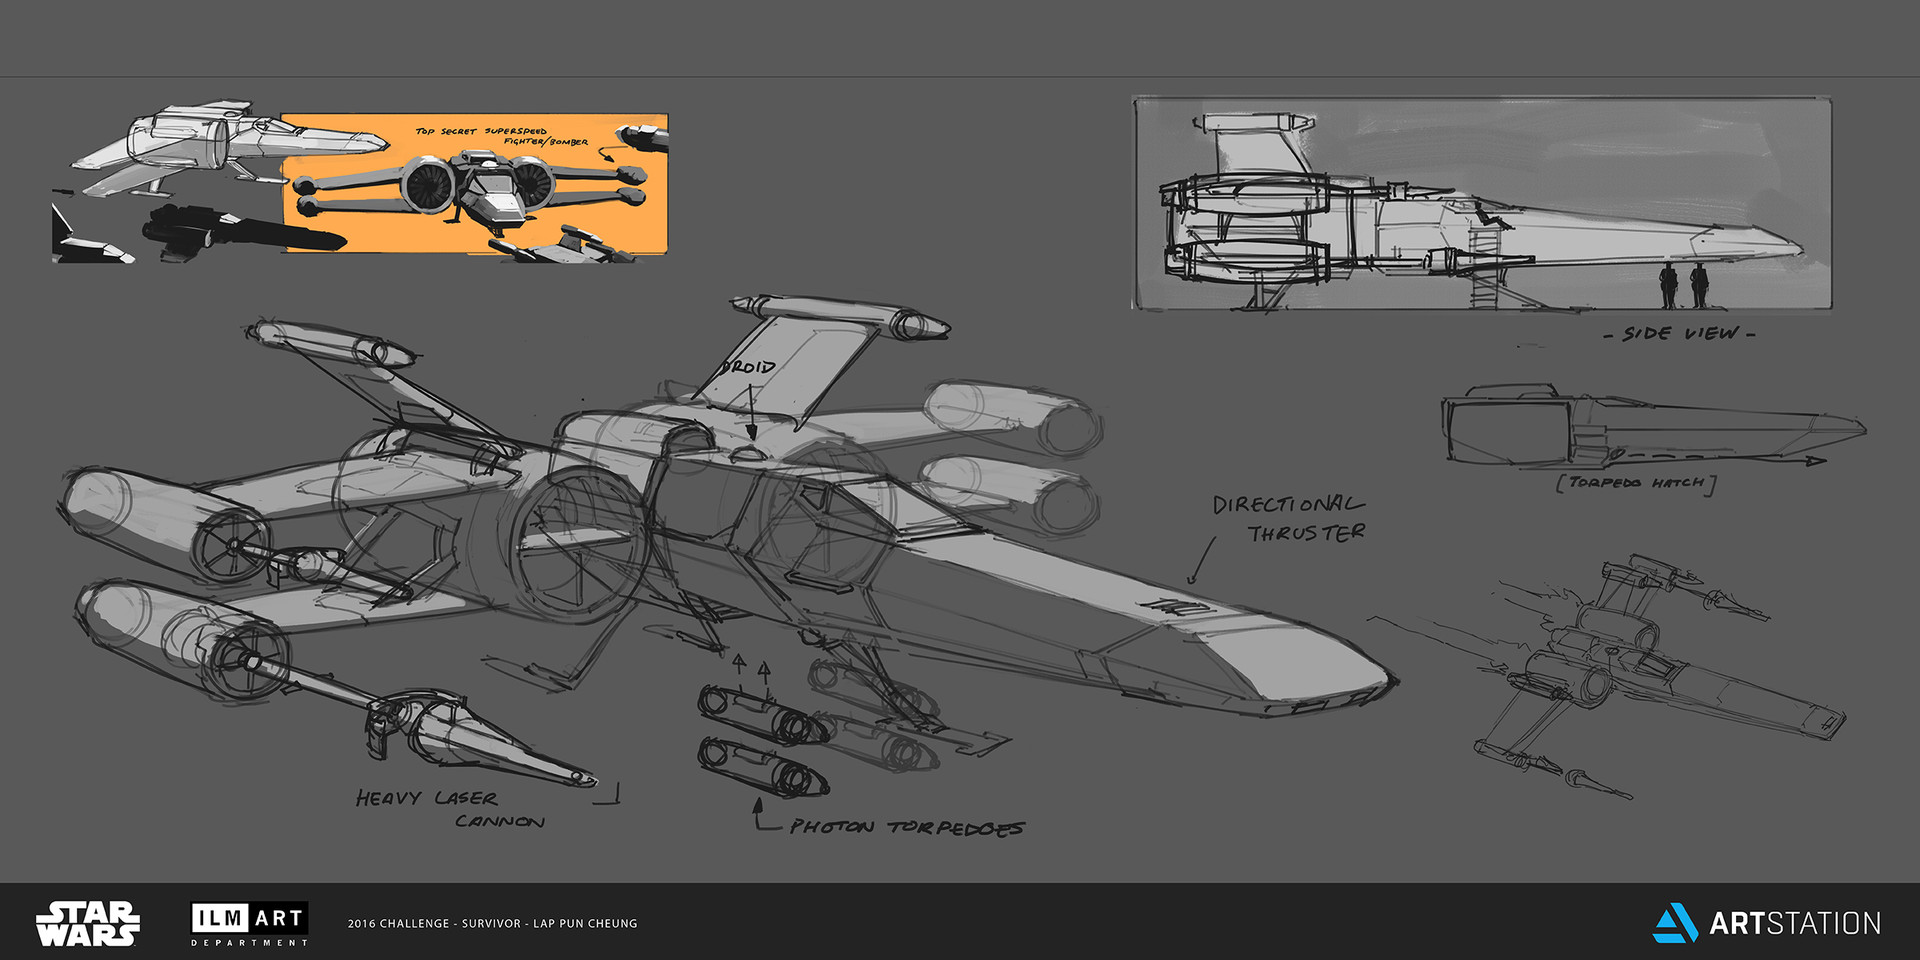 Lap pun cheung the ride fighter designs 001 online